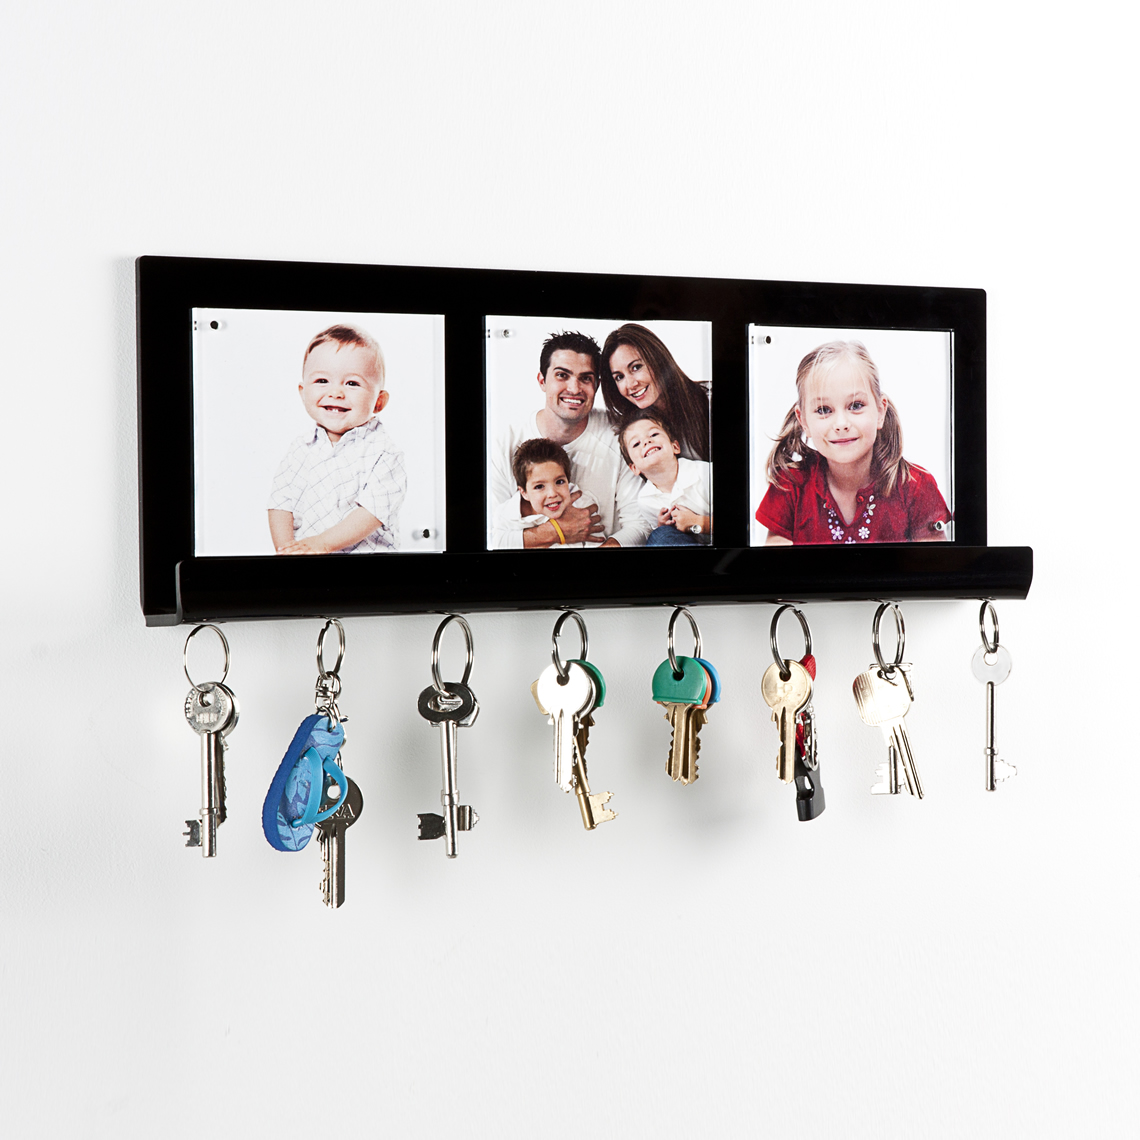 Unique Key Holders For Wall image and description